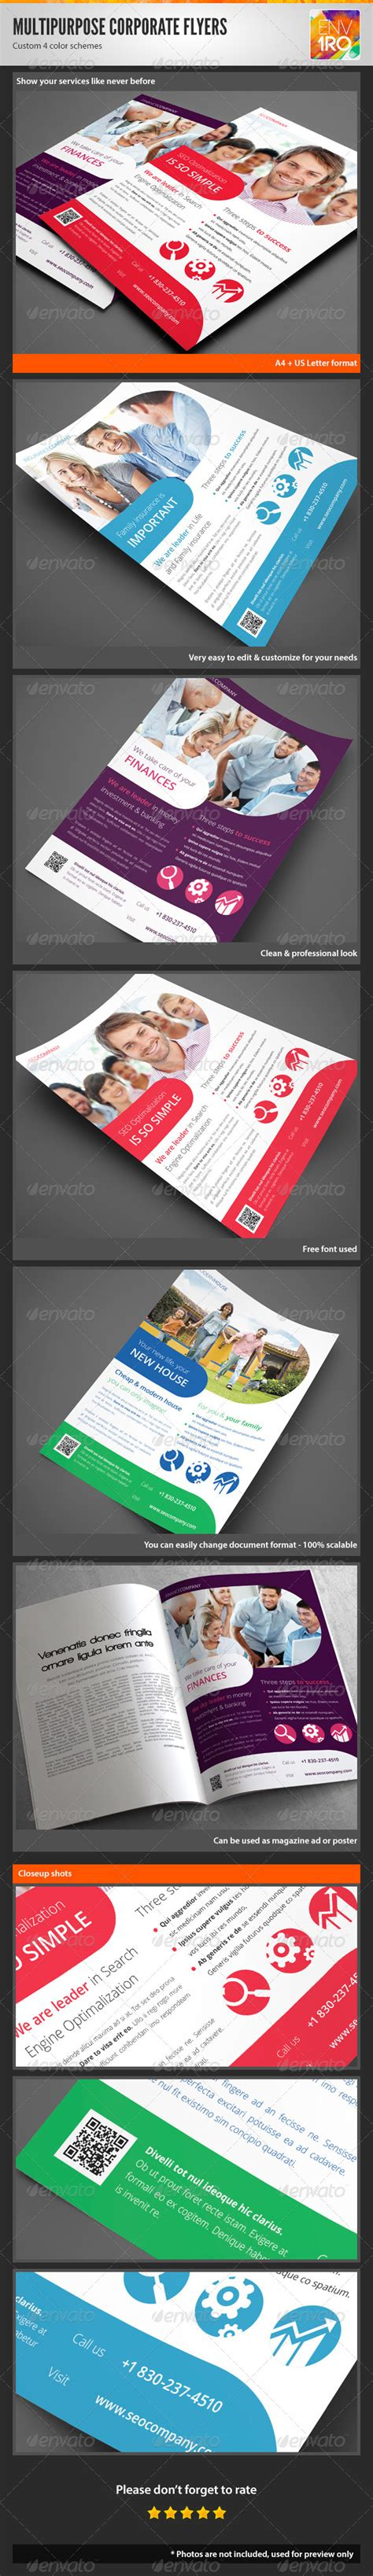 Template Multipurpose Vol Ii Brosur Banner Katalog Flyer Template Ikl multipurpose corporate flyers magazine ads vol 2 graphicriver